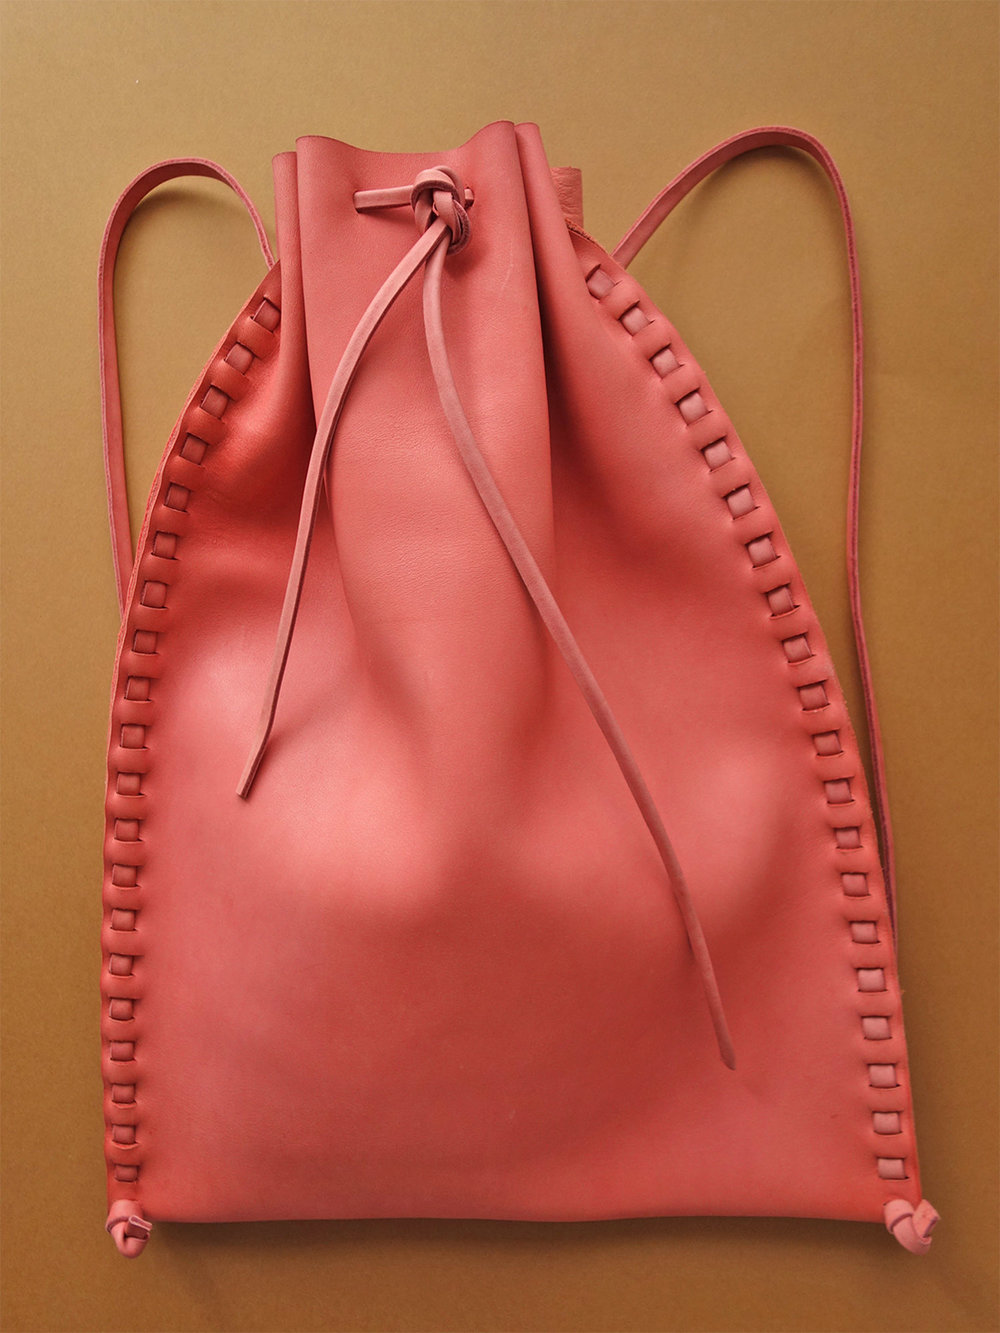 Liodebruin_Leather_drawstringbag_02.jpg